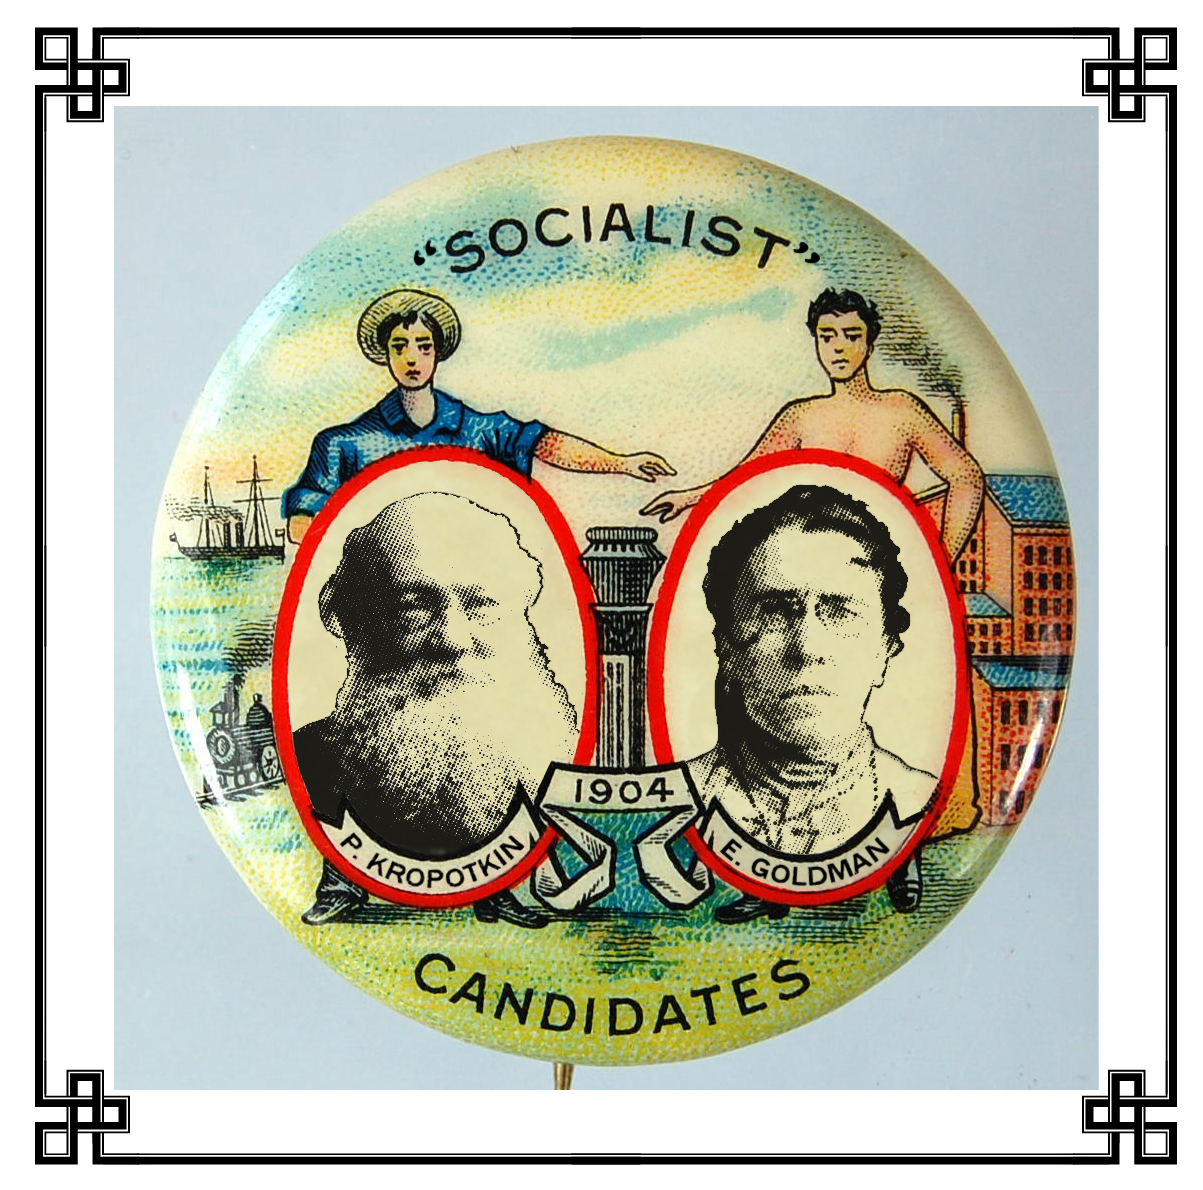 Pinback button badges such as this, no matter how ingenious their palatable understatement of the candidates' affiliation, were woefully inadequate to salvaging what proved to be the most heartbreakingly, and in retrospect lamentably, star-crossed presidential campaign in American history. Nor was the campaign aided by the fact that both candidates were almost as deeply inimical to electoral politics as they were to government in general, let alone that neither was a native-born United States citizen.